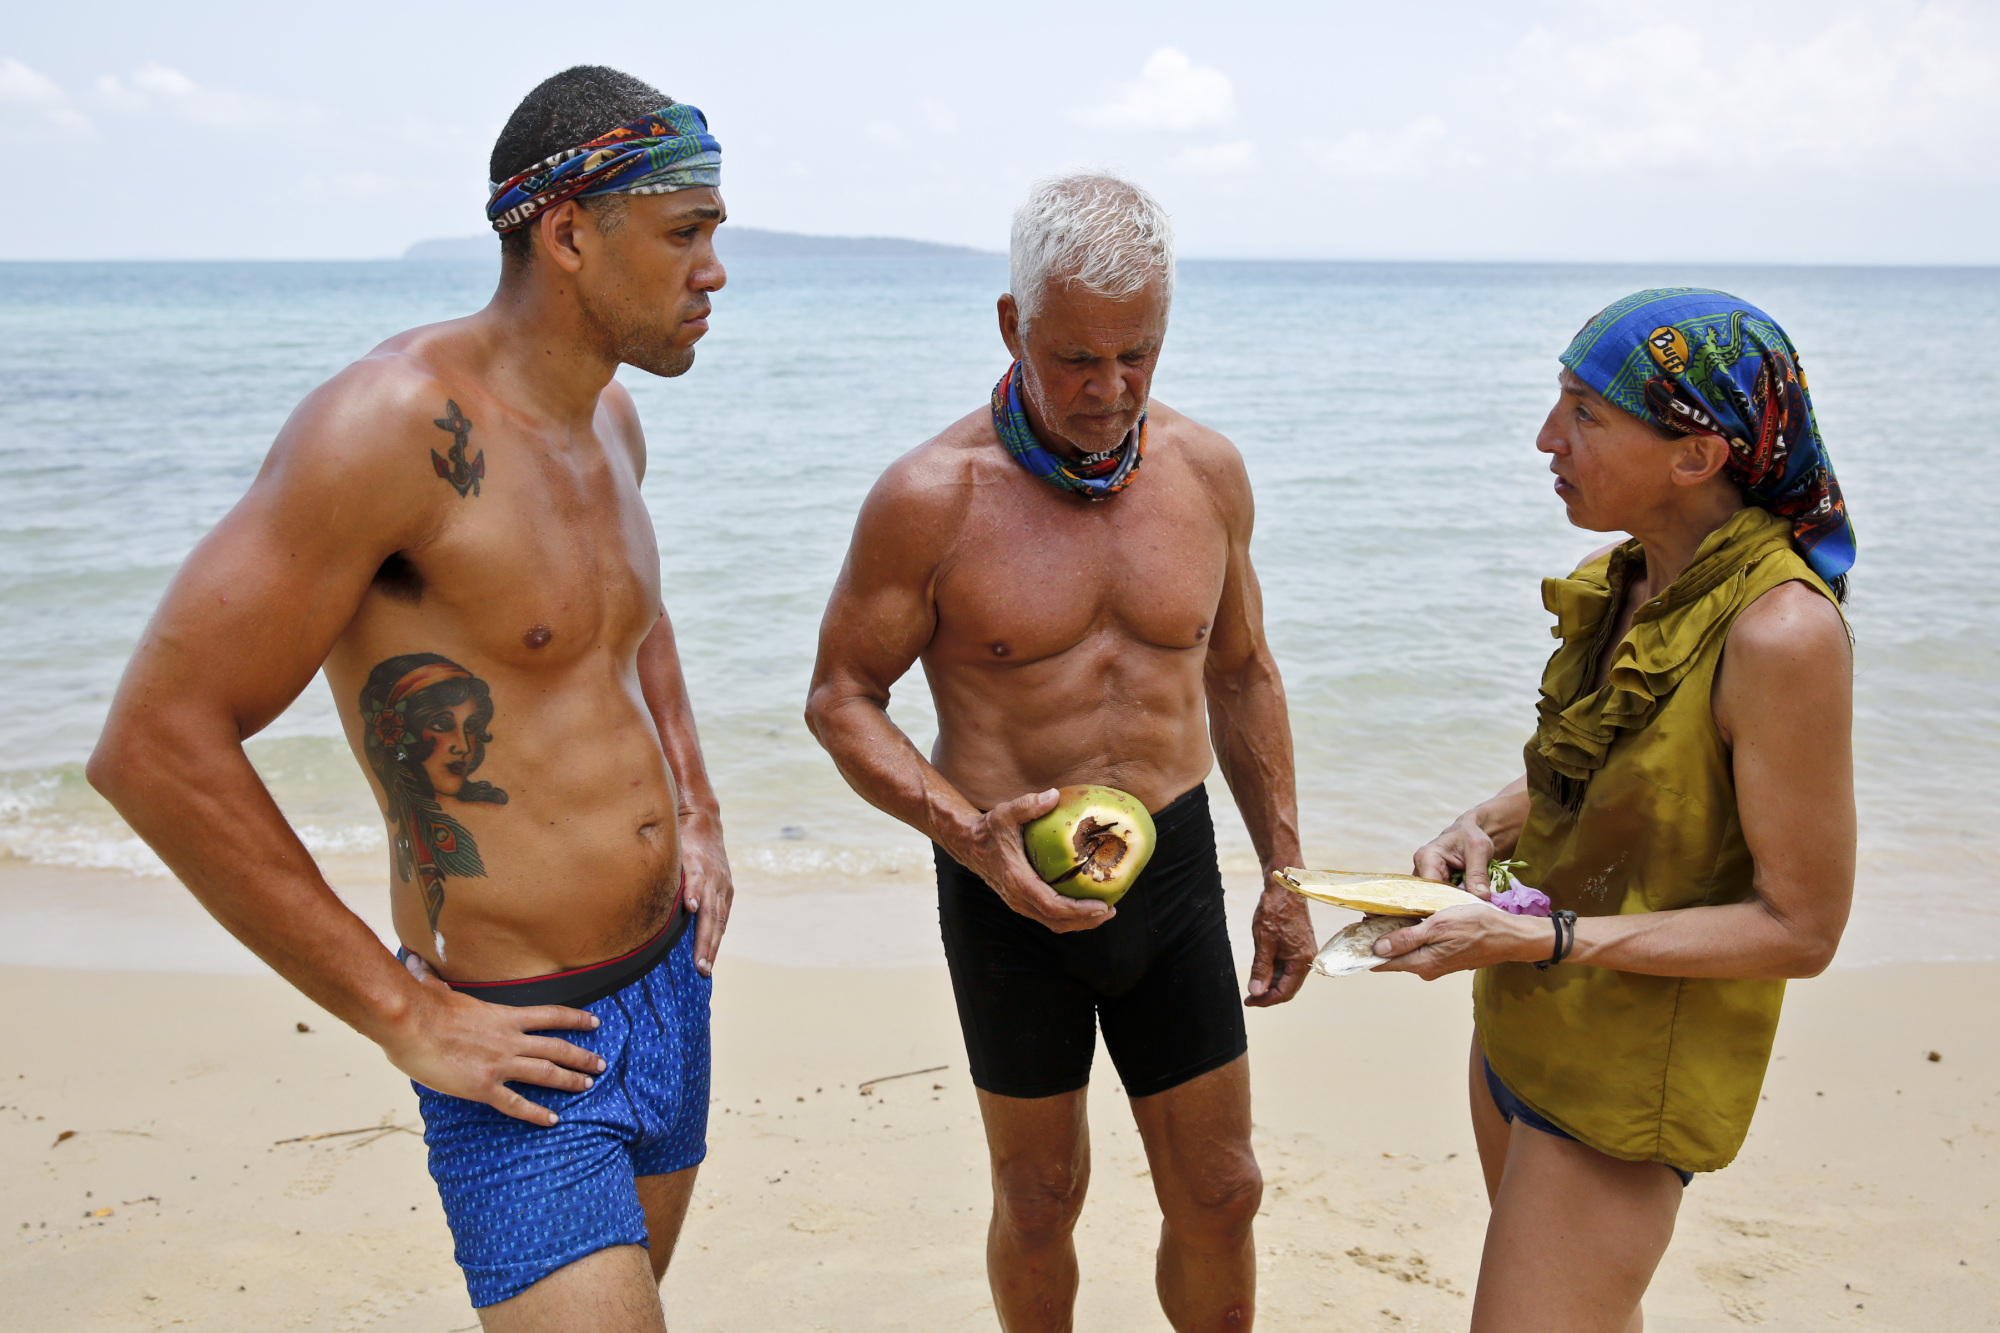 """Kindergarten Camp"" -- Peter Baggenstos, Joseph Del Campo and Debbie Wanner during the second episode of SURVIVOR KAOH: RONG -- Brains vs. Brawn vs. Beauty. The show airs, Wednesday, February 24 (8:00-9:00 PM, ET/PT) on the CBS Television Network. Photo: Monty Brinton /CBS Entertainment �©2016 CBS Broadcasting, Inc. All Rights. Reserved."